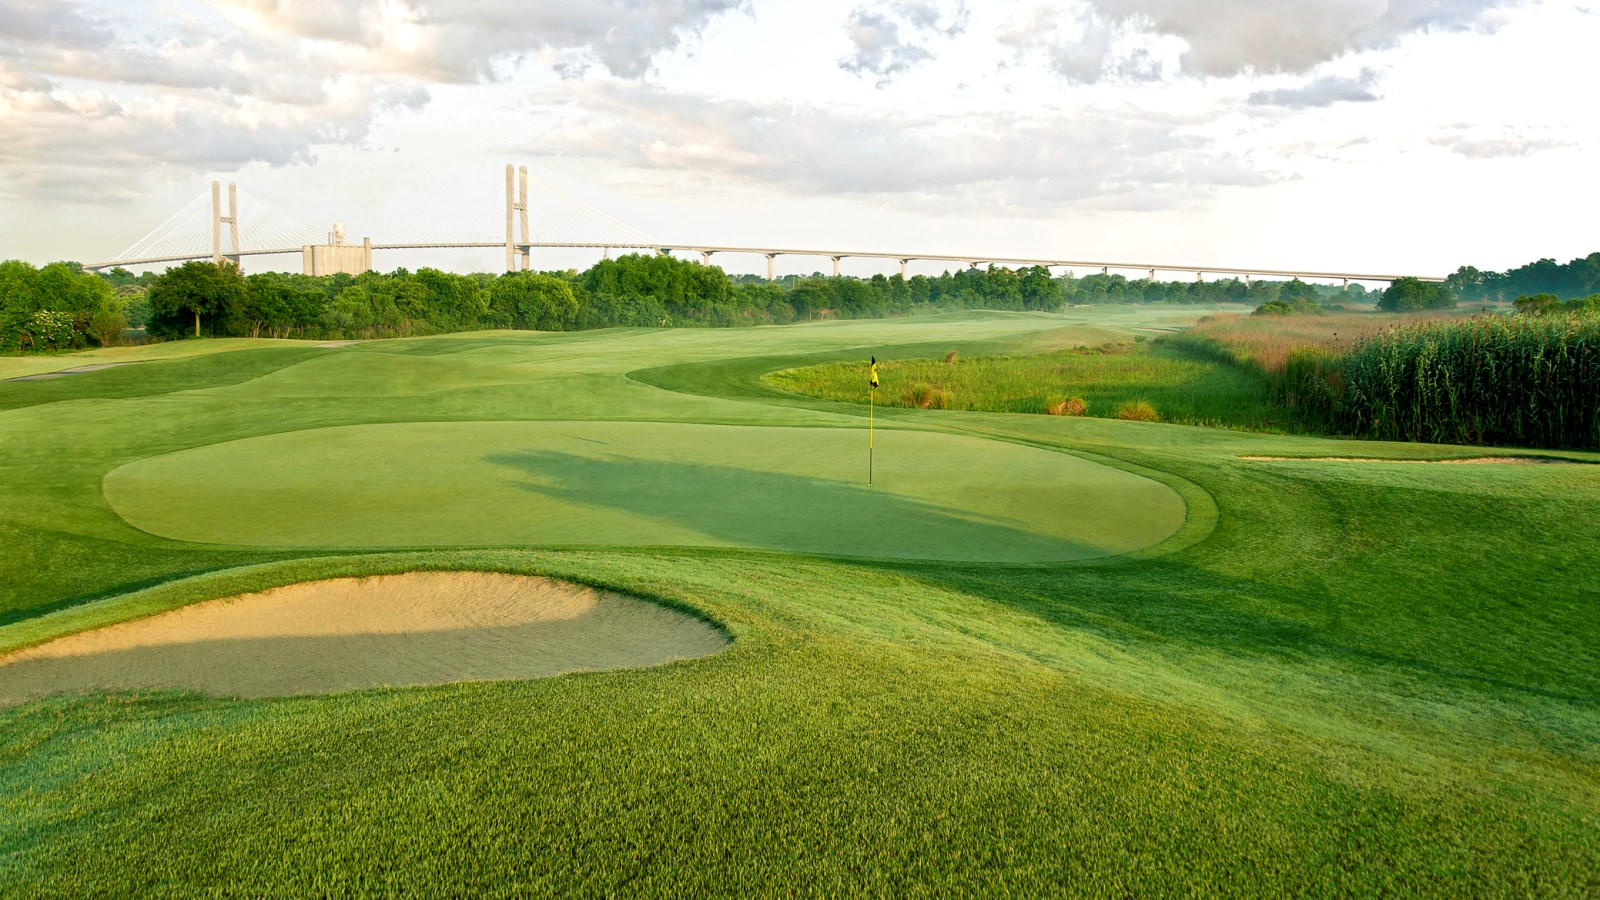 Savannah Golf Courses - The Club at Savannah Harbor